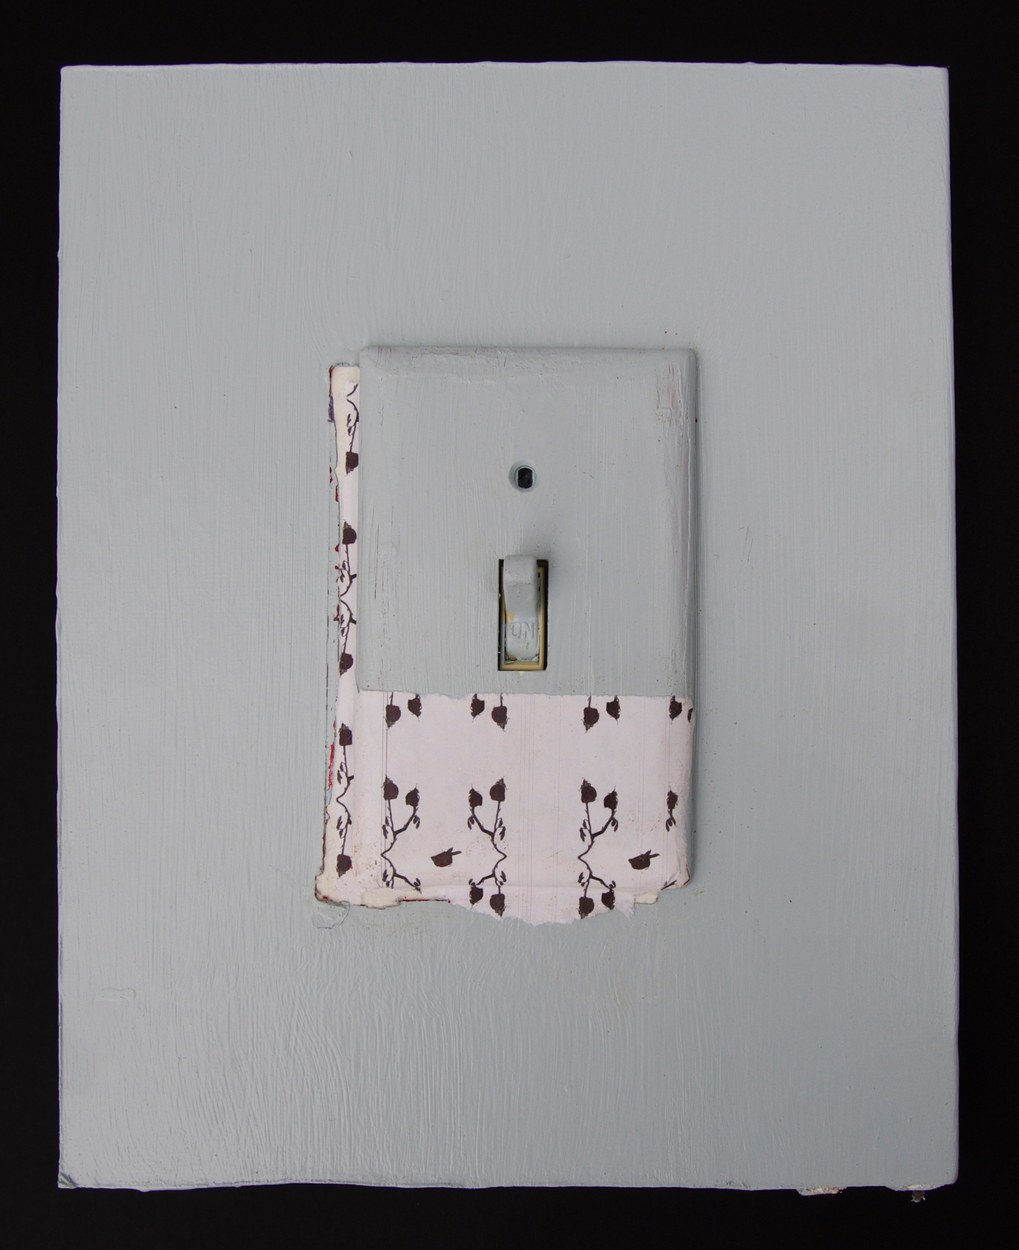 Second Bedroom (Light Switch)